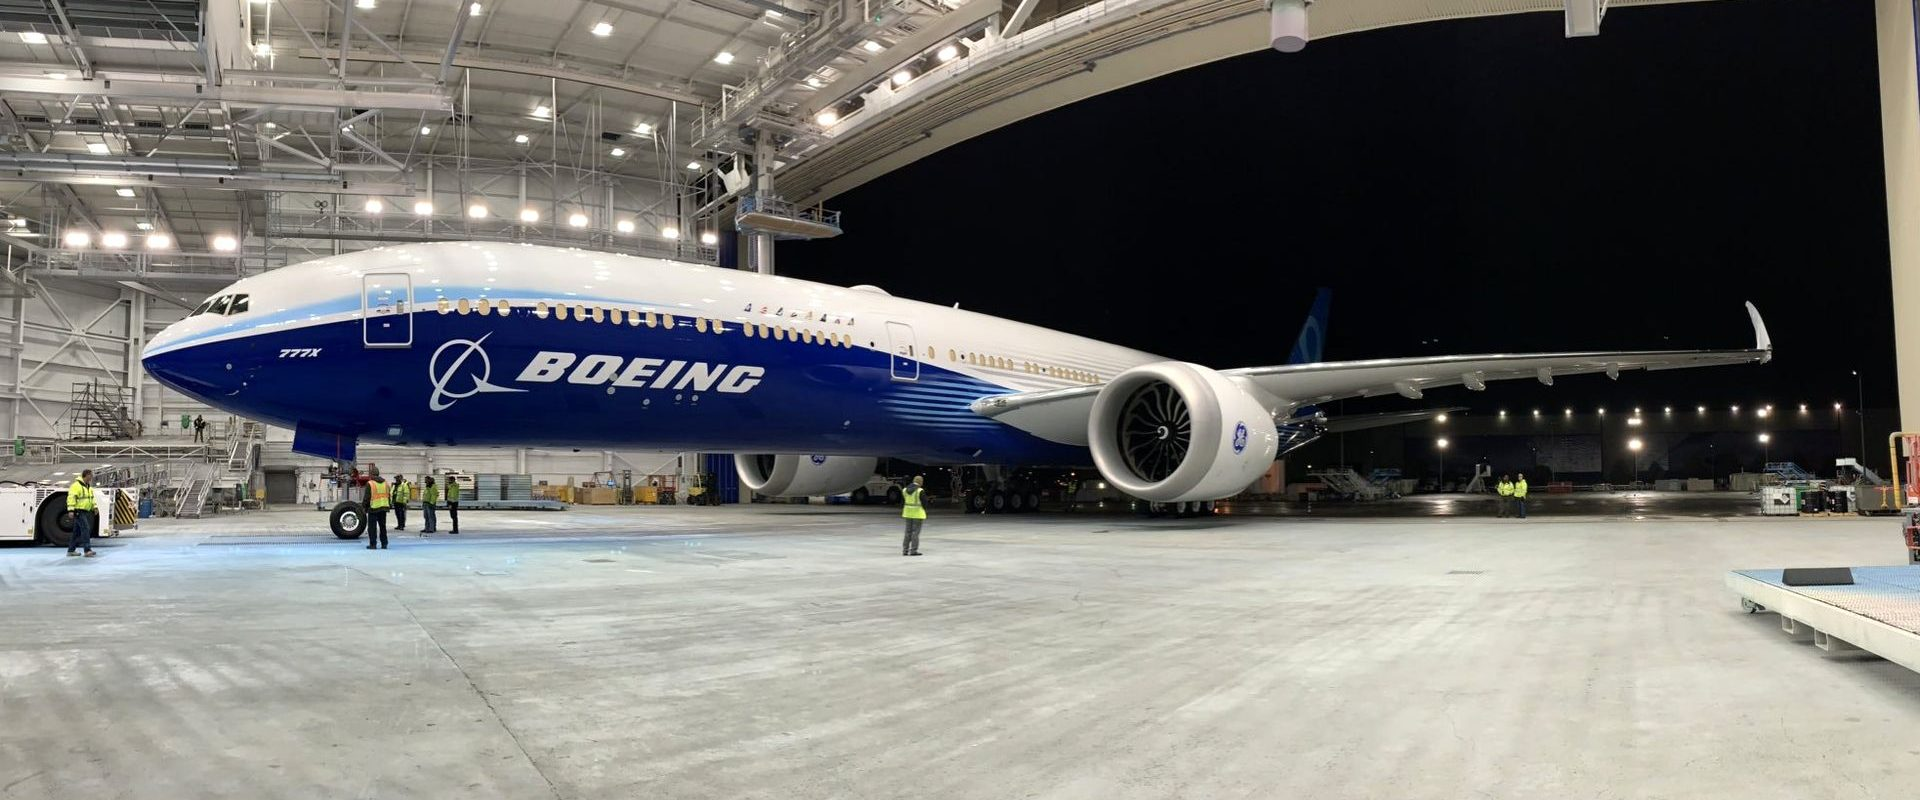 Airplane Boeing 777X finished first test flight